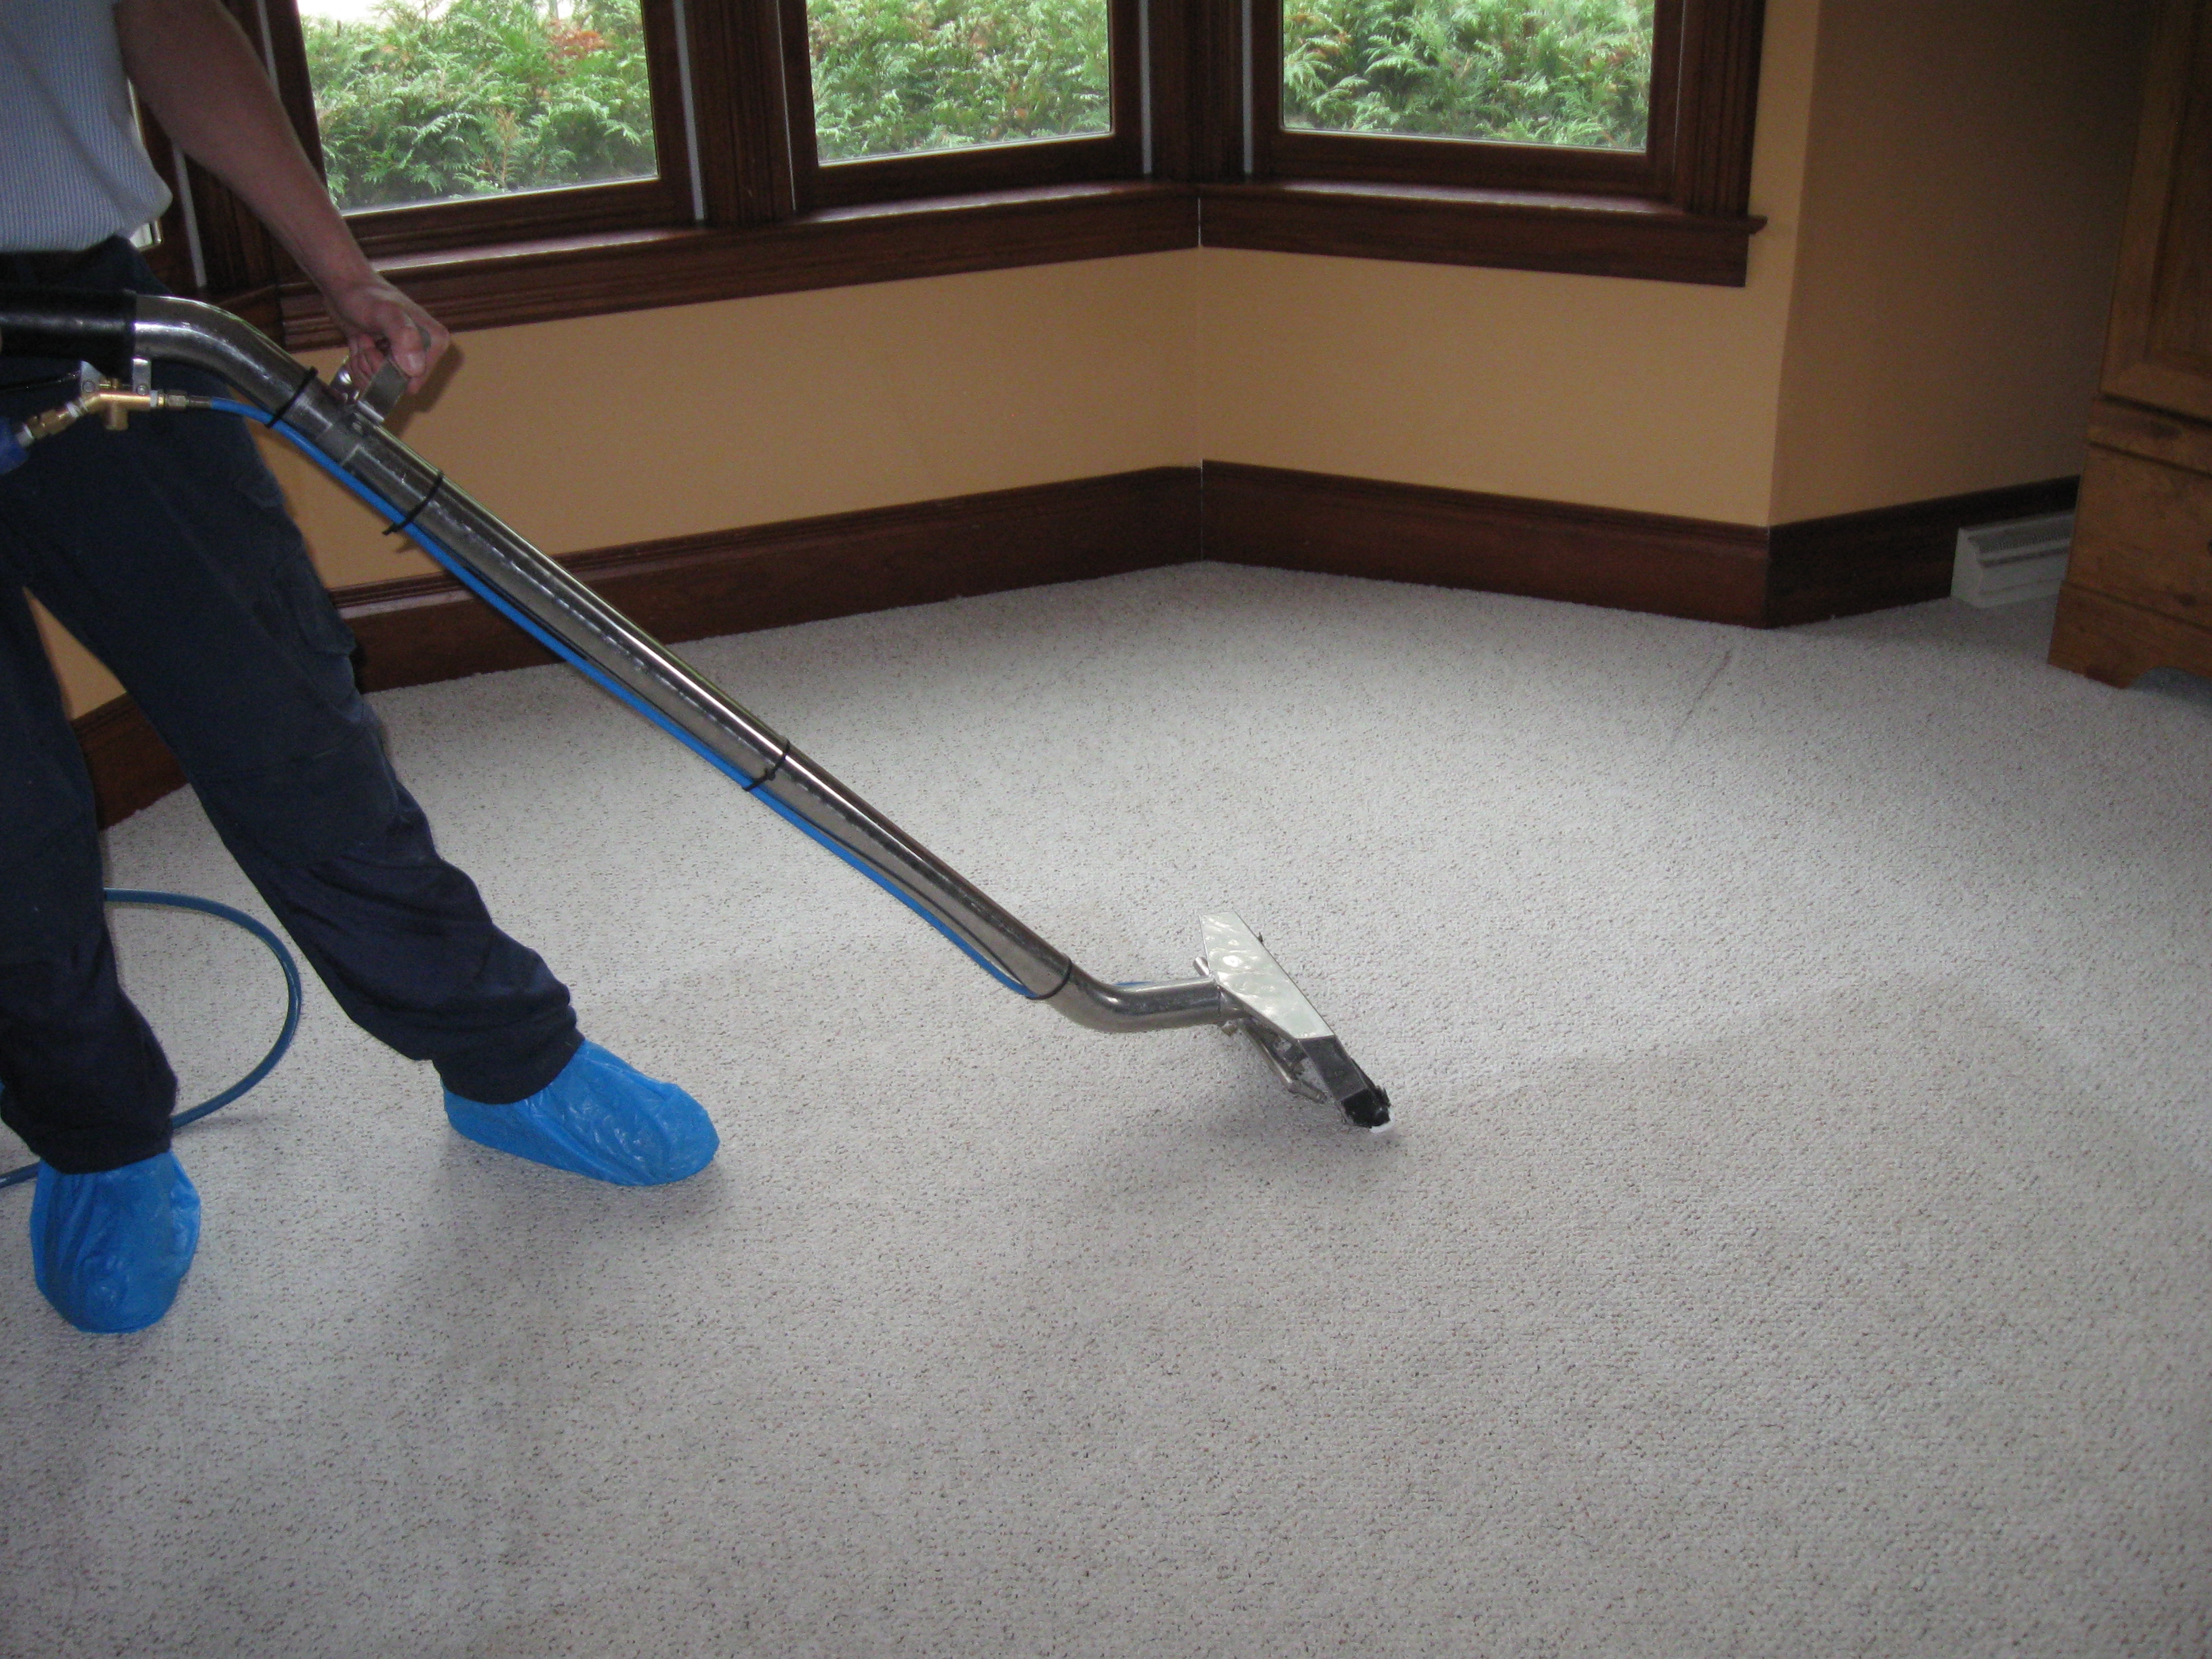 carpet-cleaner-fwcc